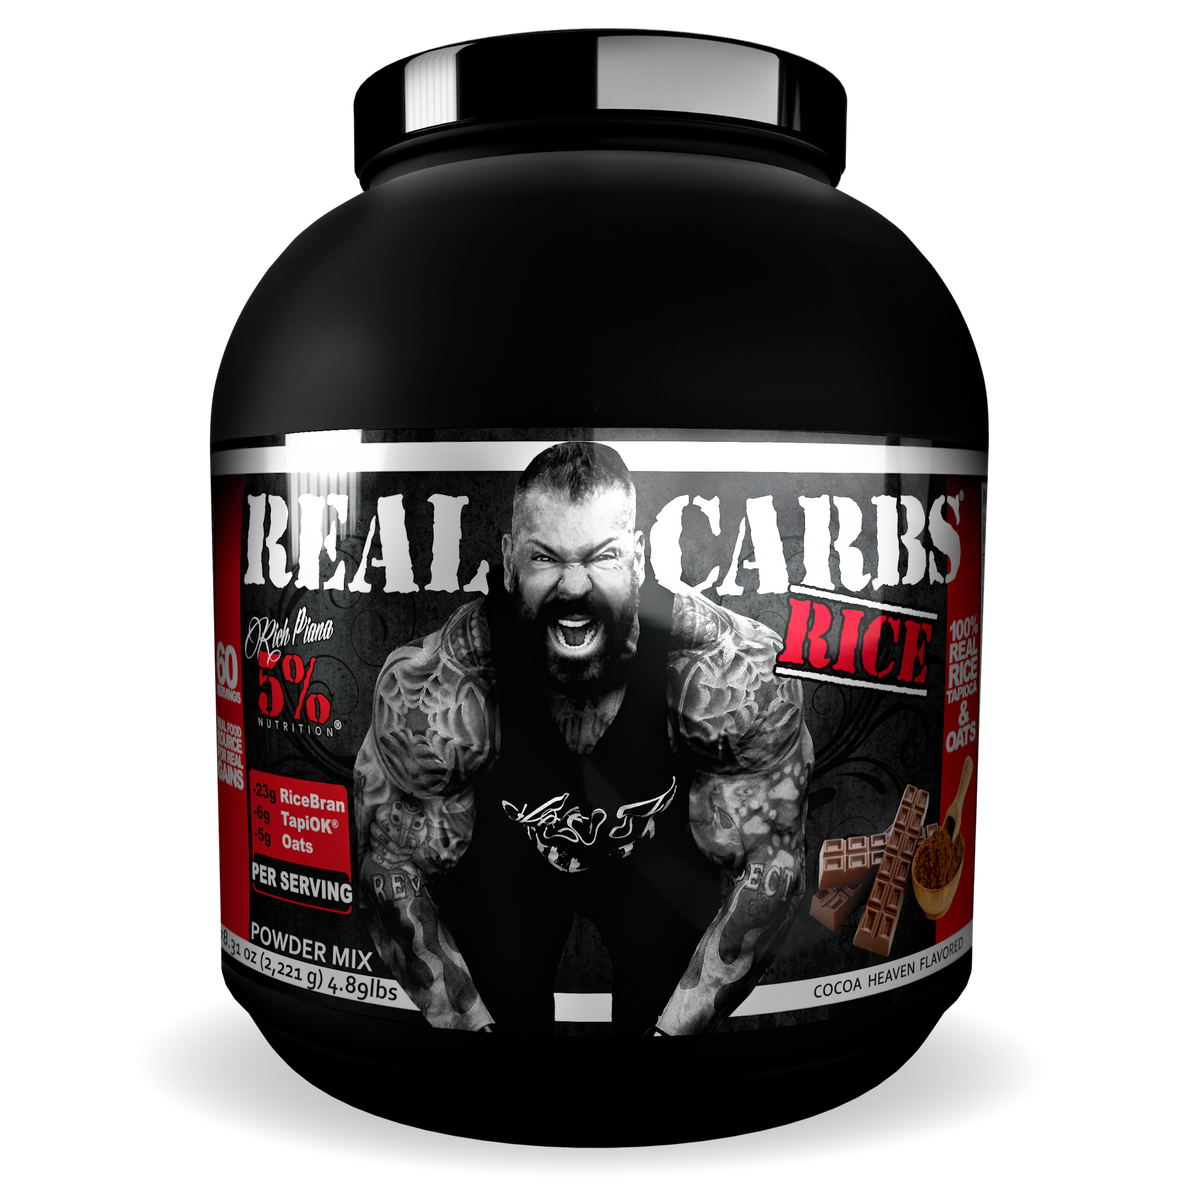 Real Carbs Rice Complex Carbohydrates – Rich Piana 5% Nutrition